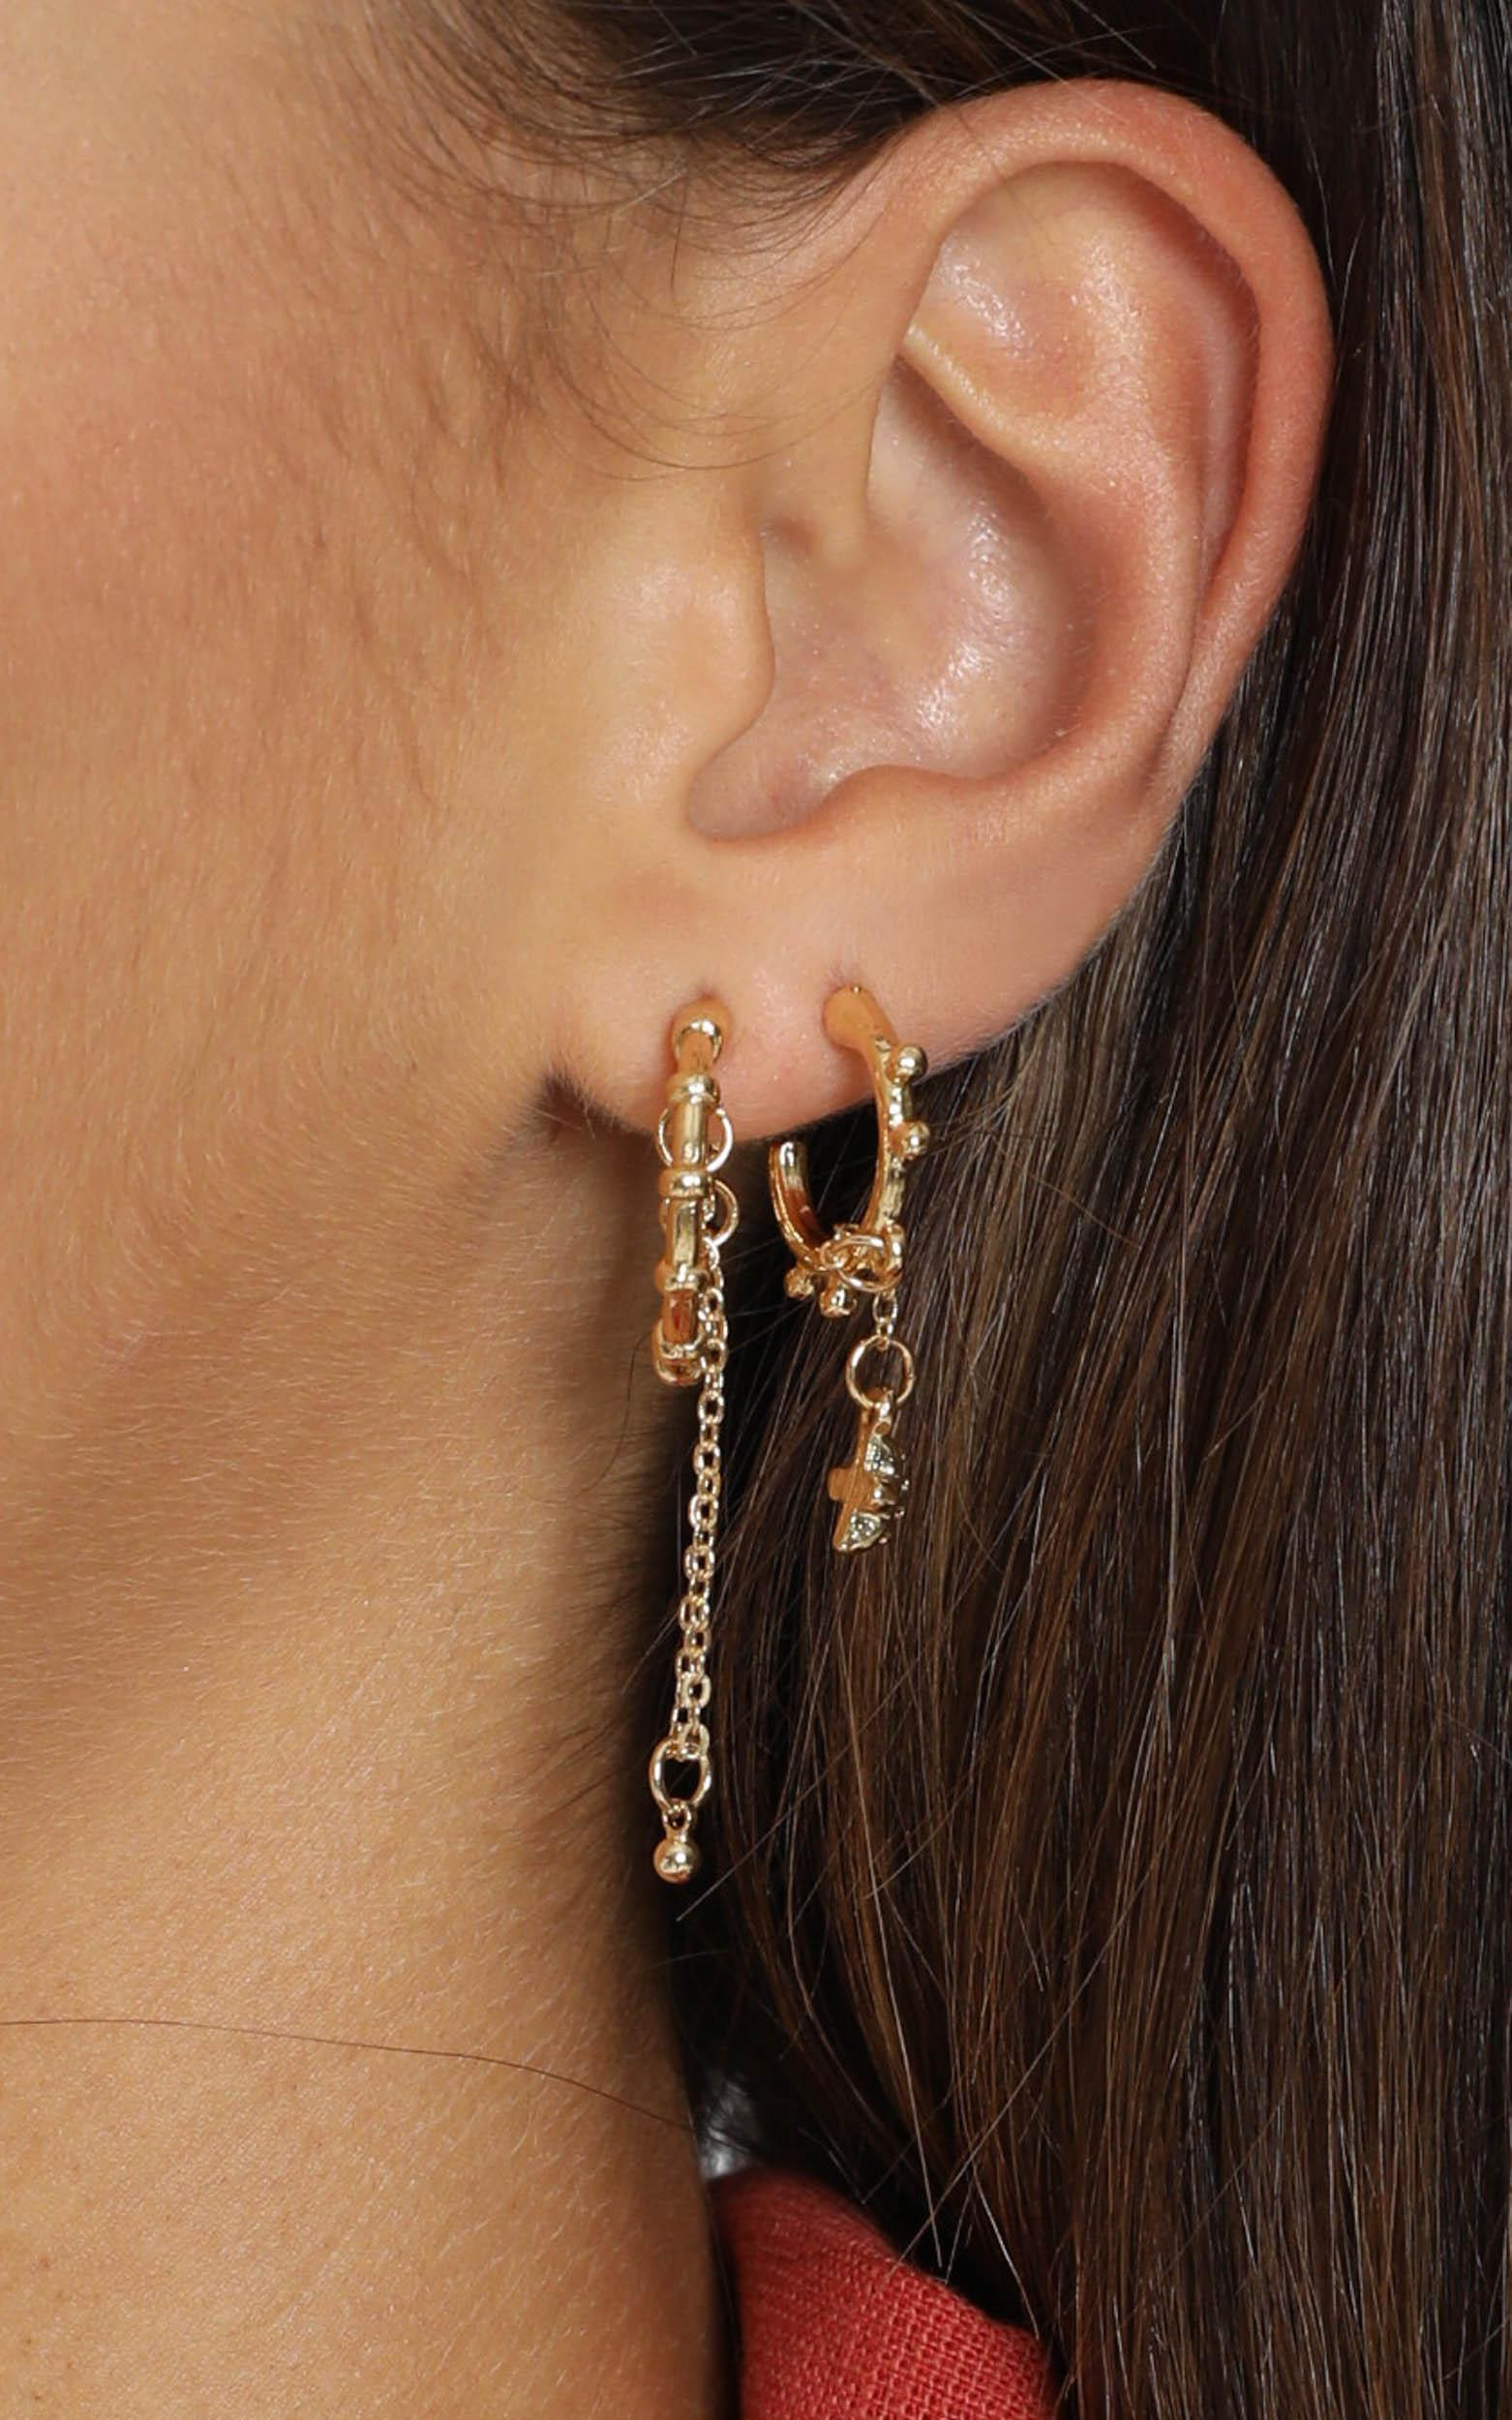 Minc Collections - Cowrie Hoop Earrings Set In Gold, , hi-res image number null